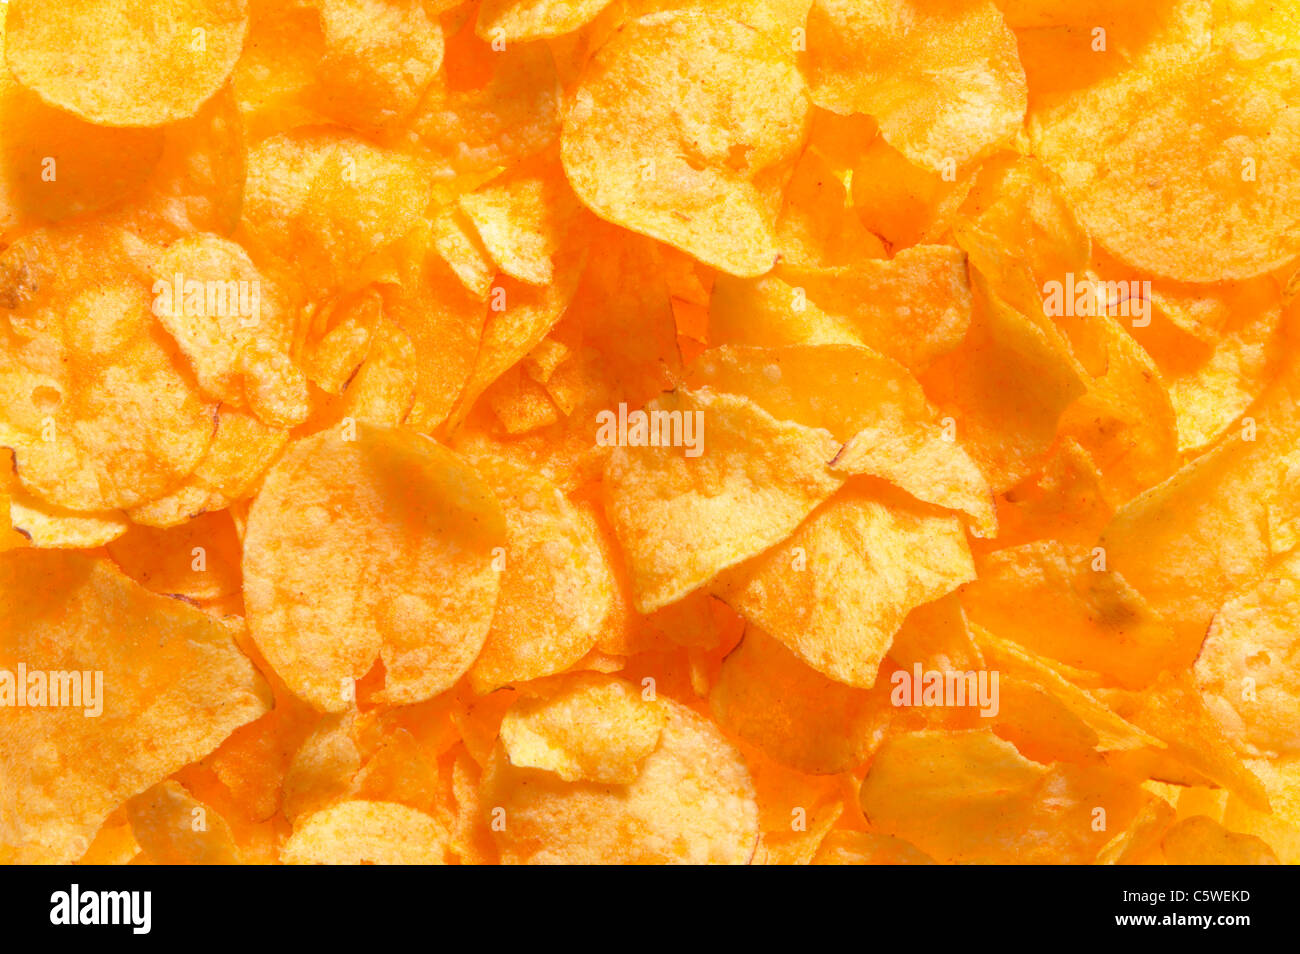 Batata chips, full frame, close-up Imagens de Stock